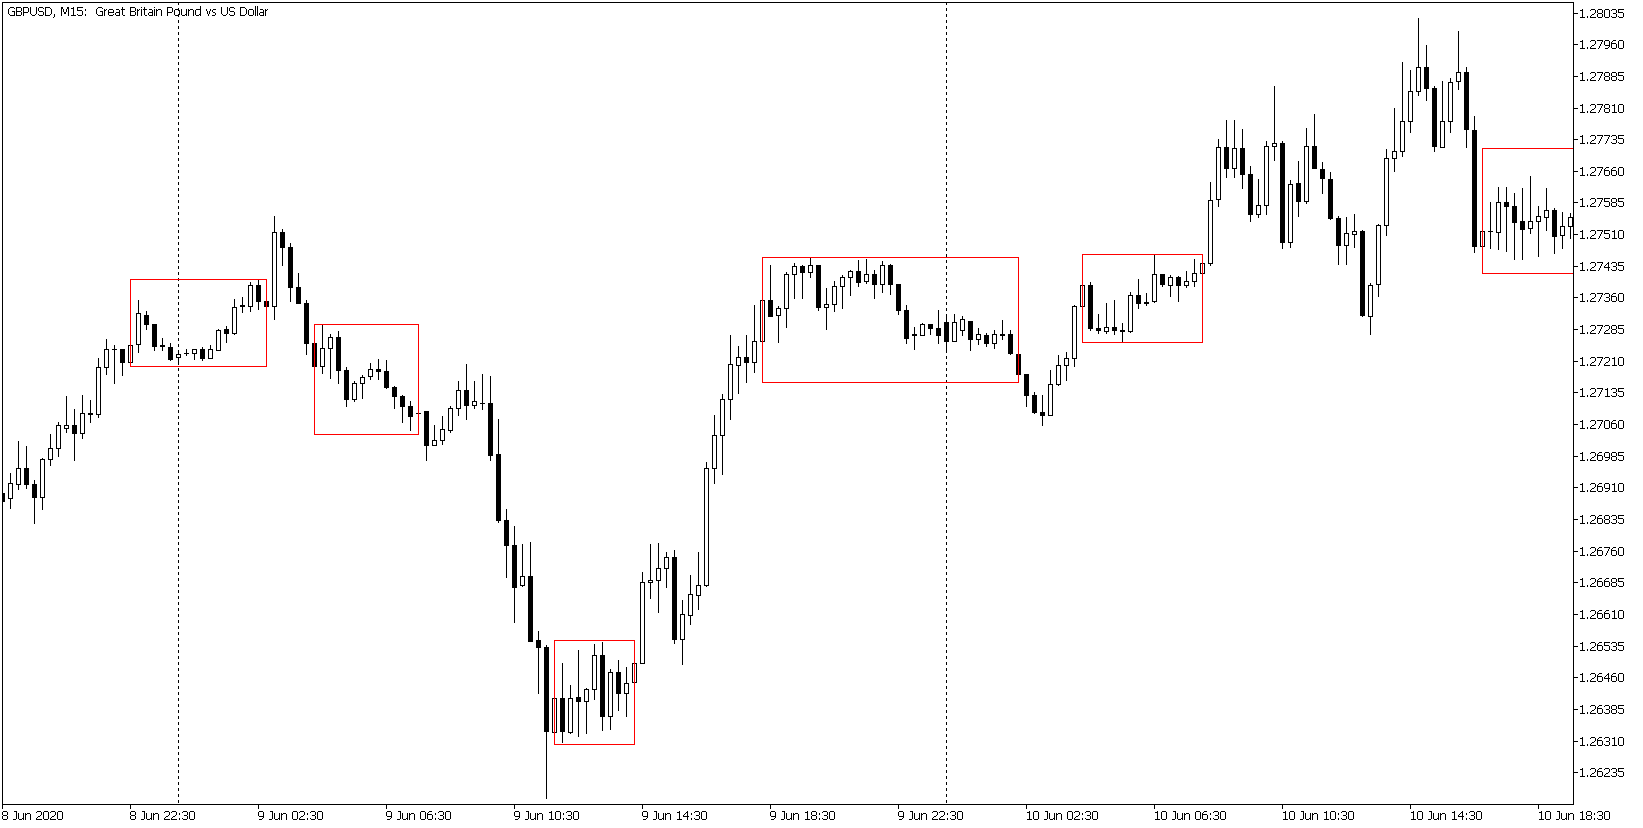 Breakout Box Indicator: When to go long